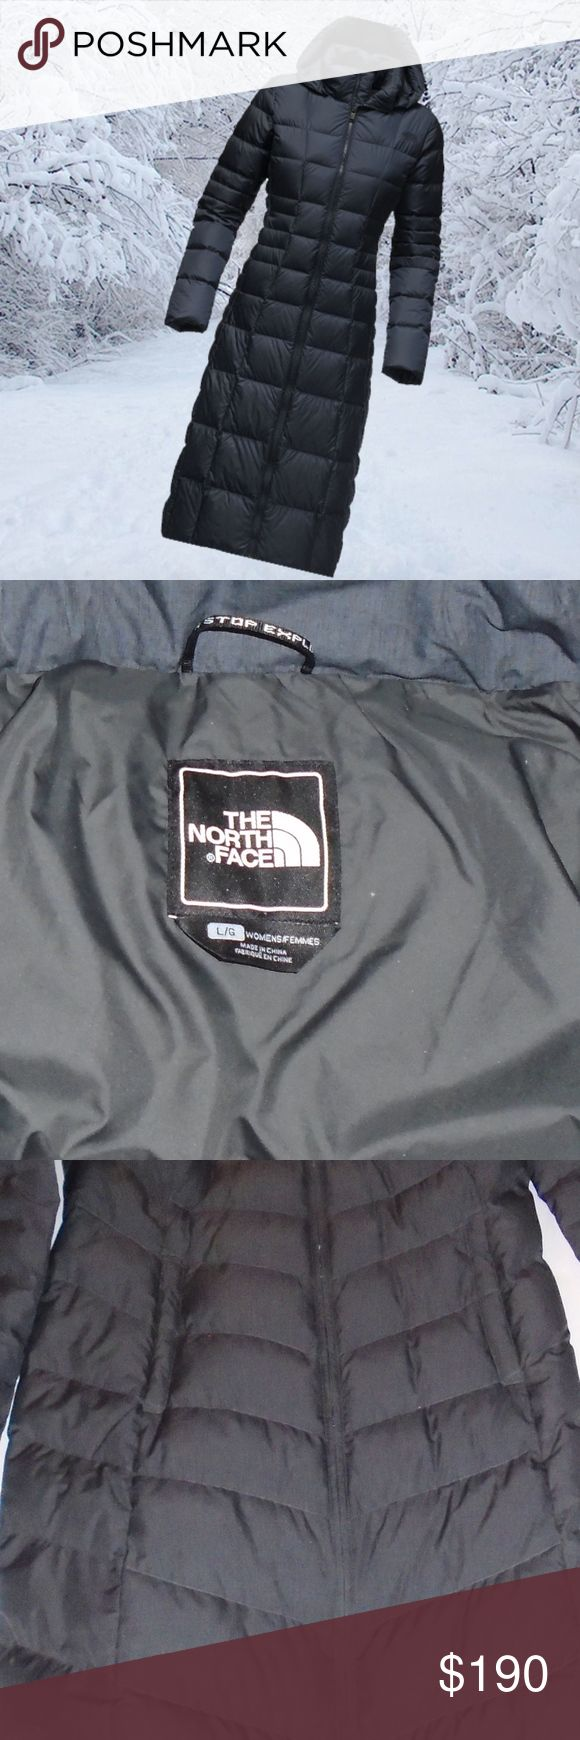 North Face Triple C II Women's Parka L/G Barely worn - I'm selling this because I have arthritis and due to this the zipper is difficult for me - I needed to find a 40 year old who had no problem - kind of funny but a bit embarrassing. What a great Parka - It's a shame it doesn't have snaps. 550 Fill Goose Down - the color is a dark grayish blue The North Face Jackets & Coats Puffers